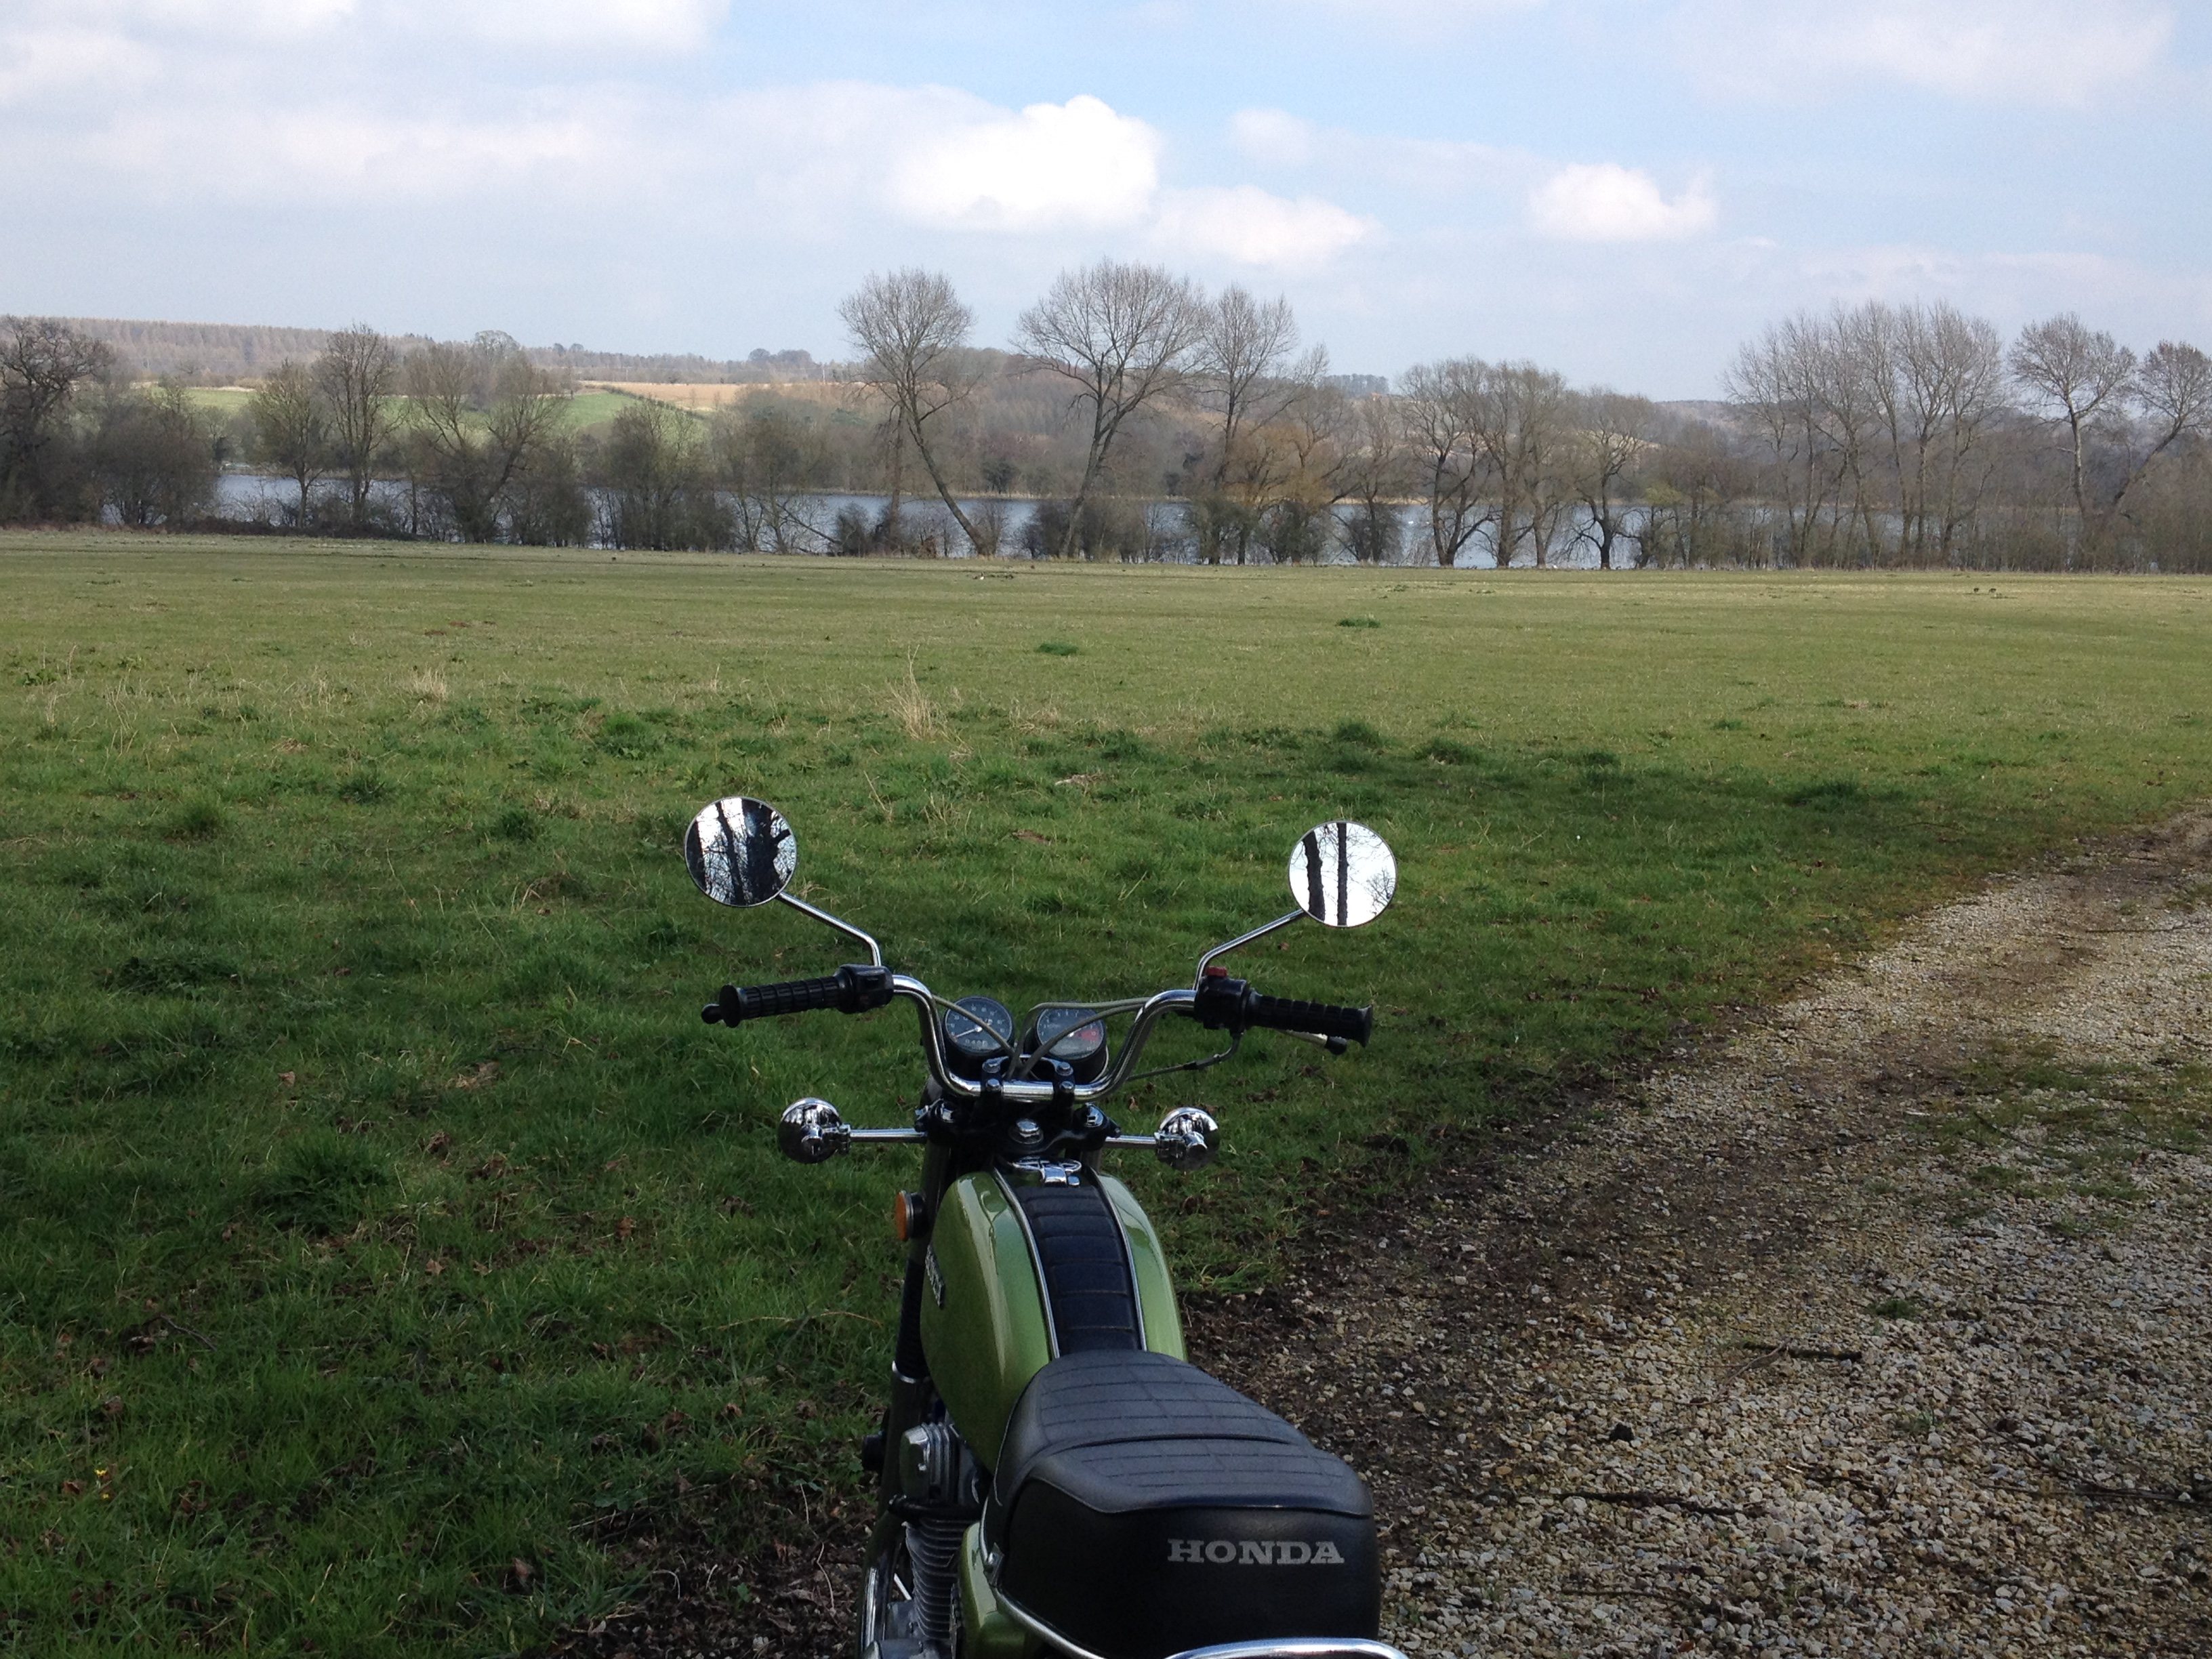 CB200 Olive is back on the road again-bike-ride-out-89-miles-helmsley-surounding-villages-3.4.16-013.jpg